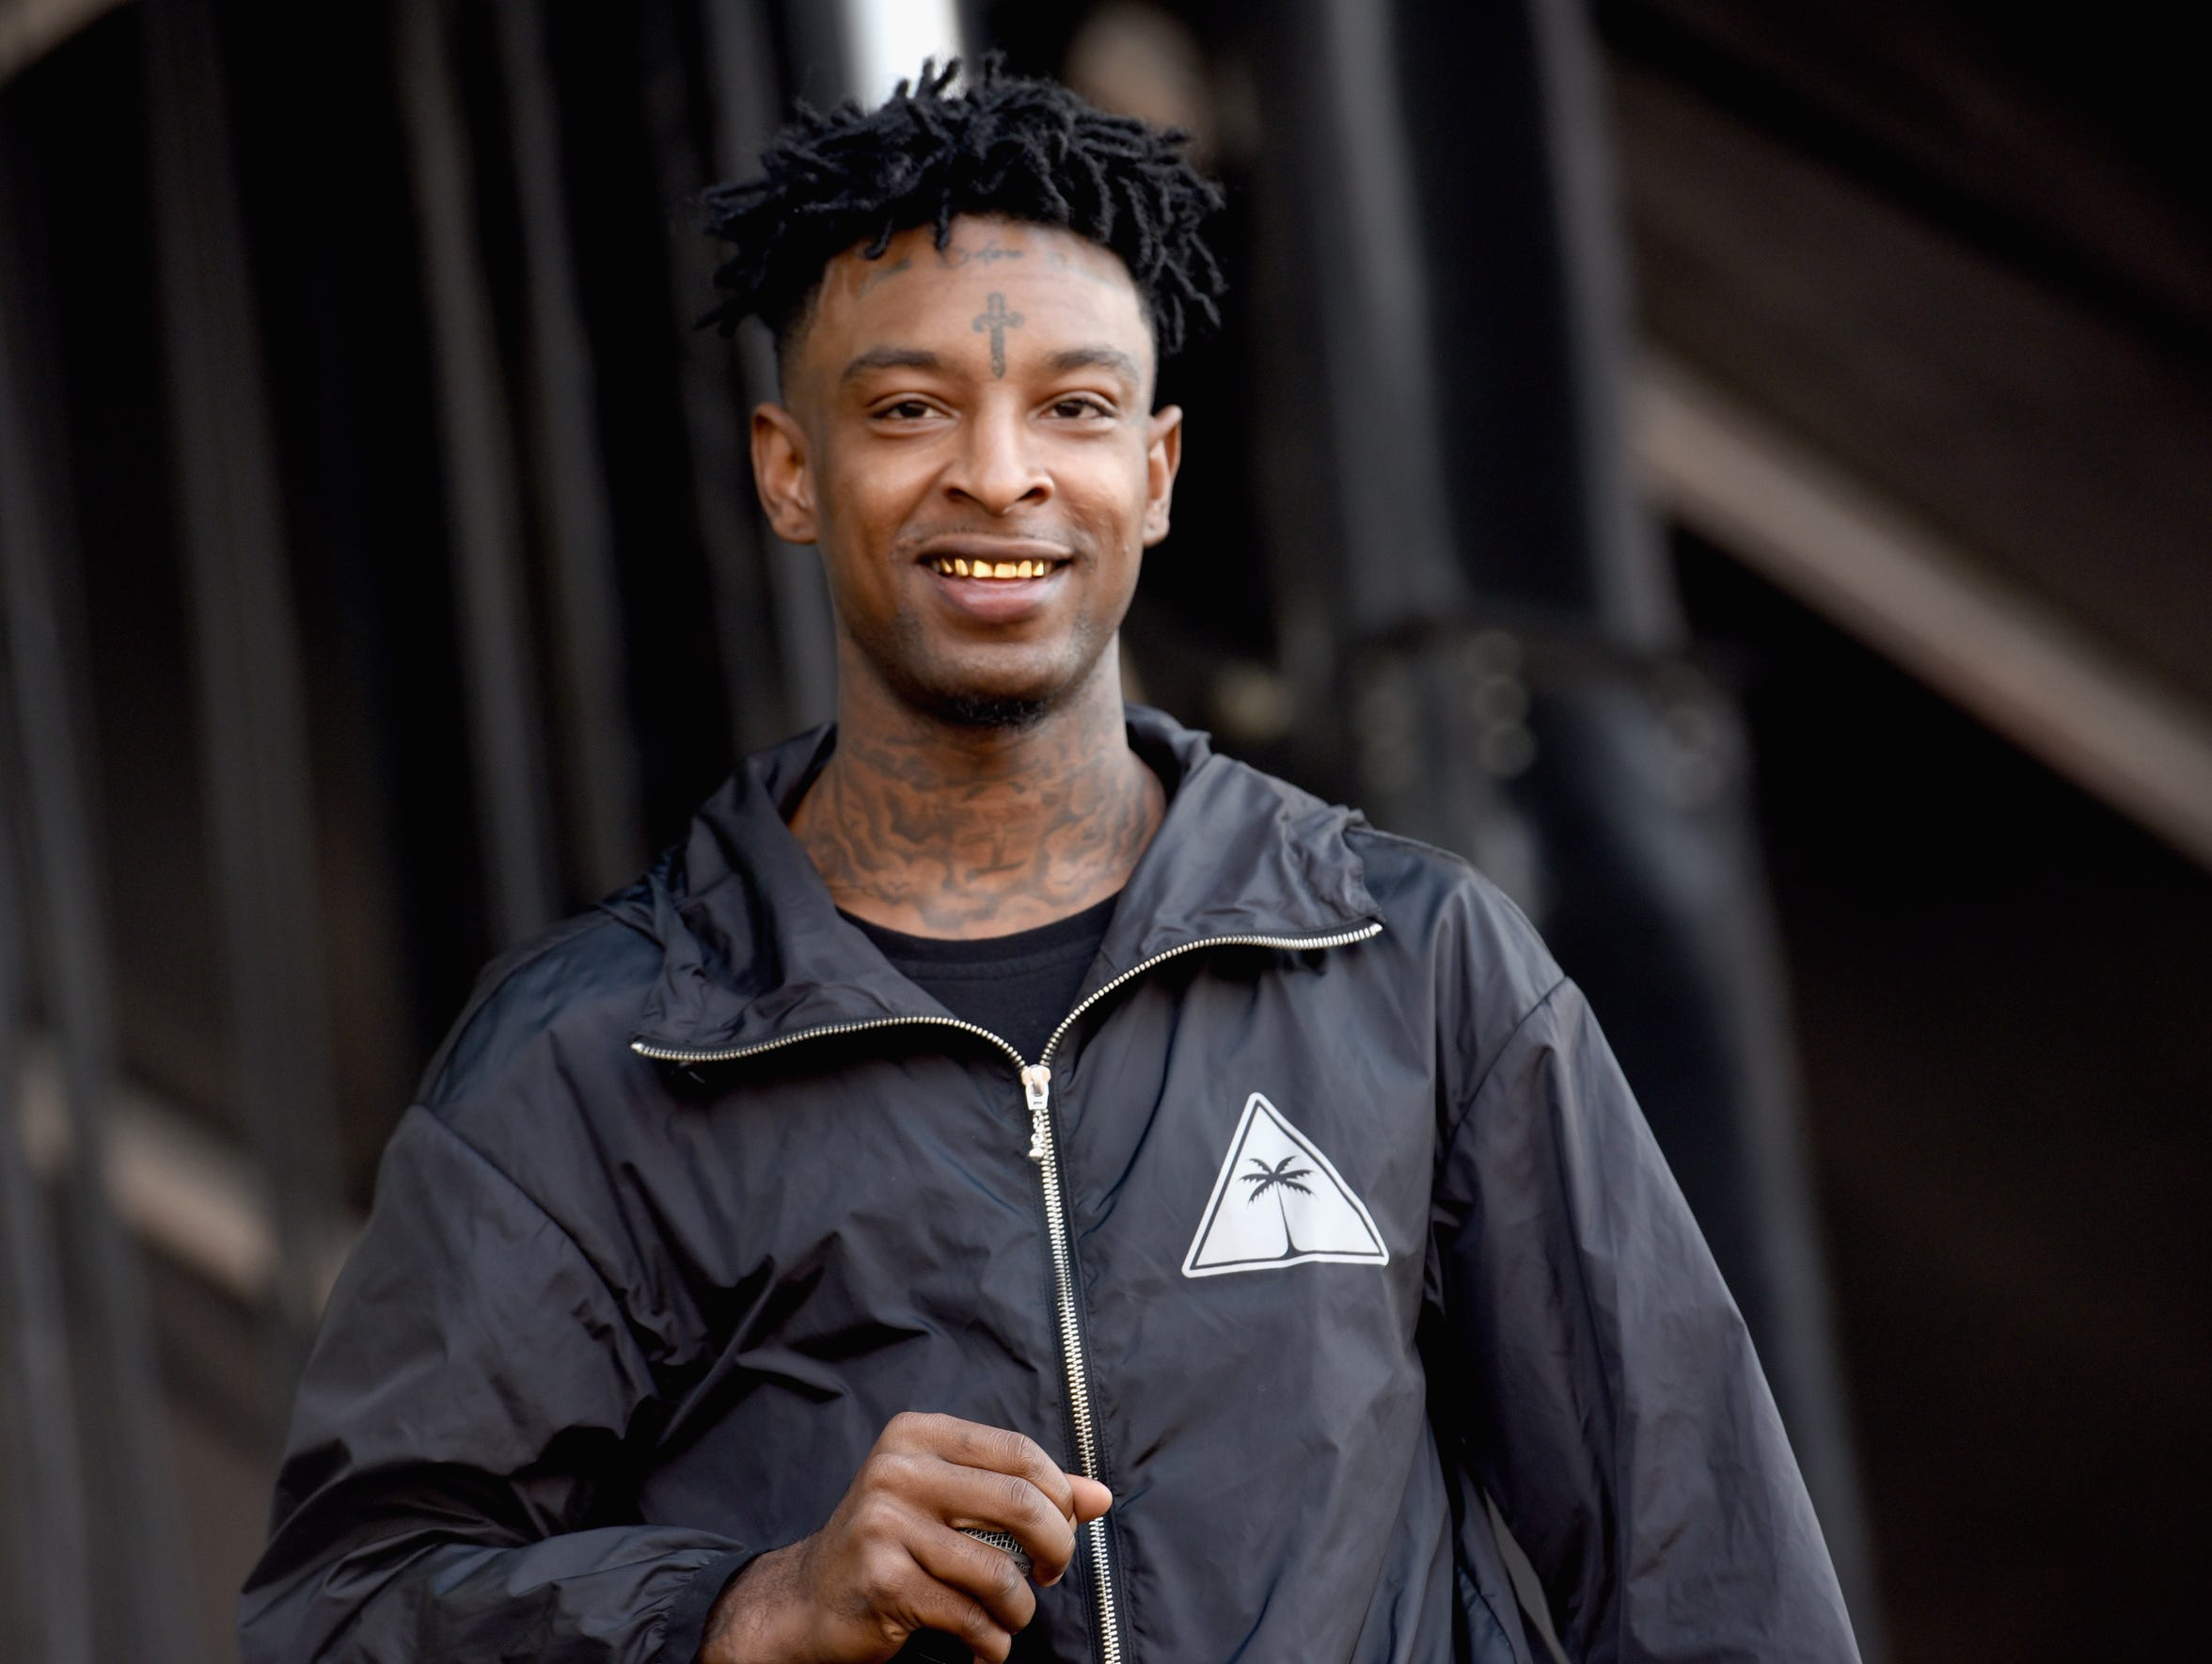 With his blunt delivery and gritty honesty, 21 Savage